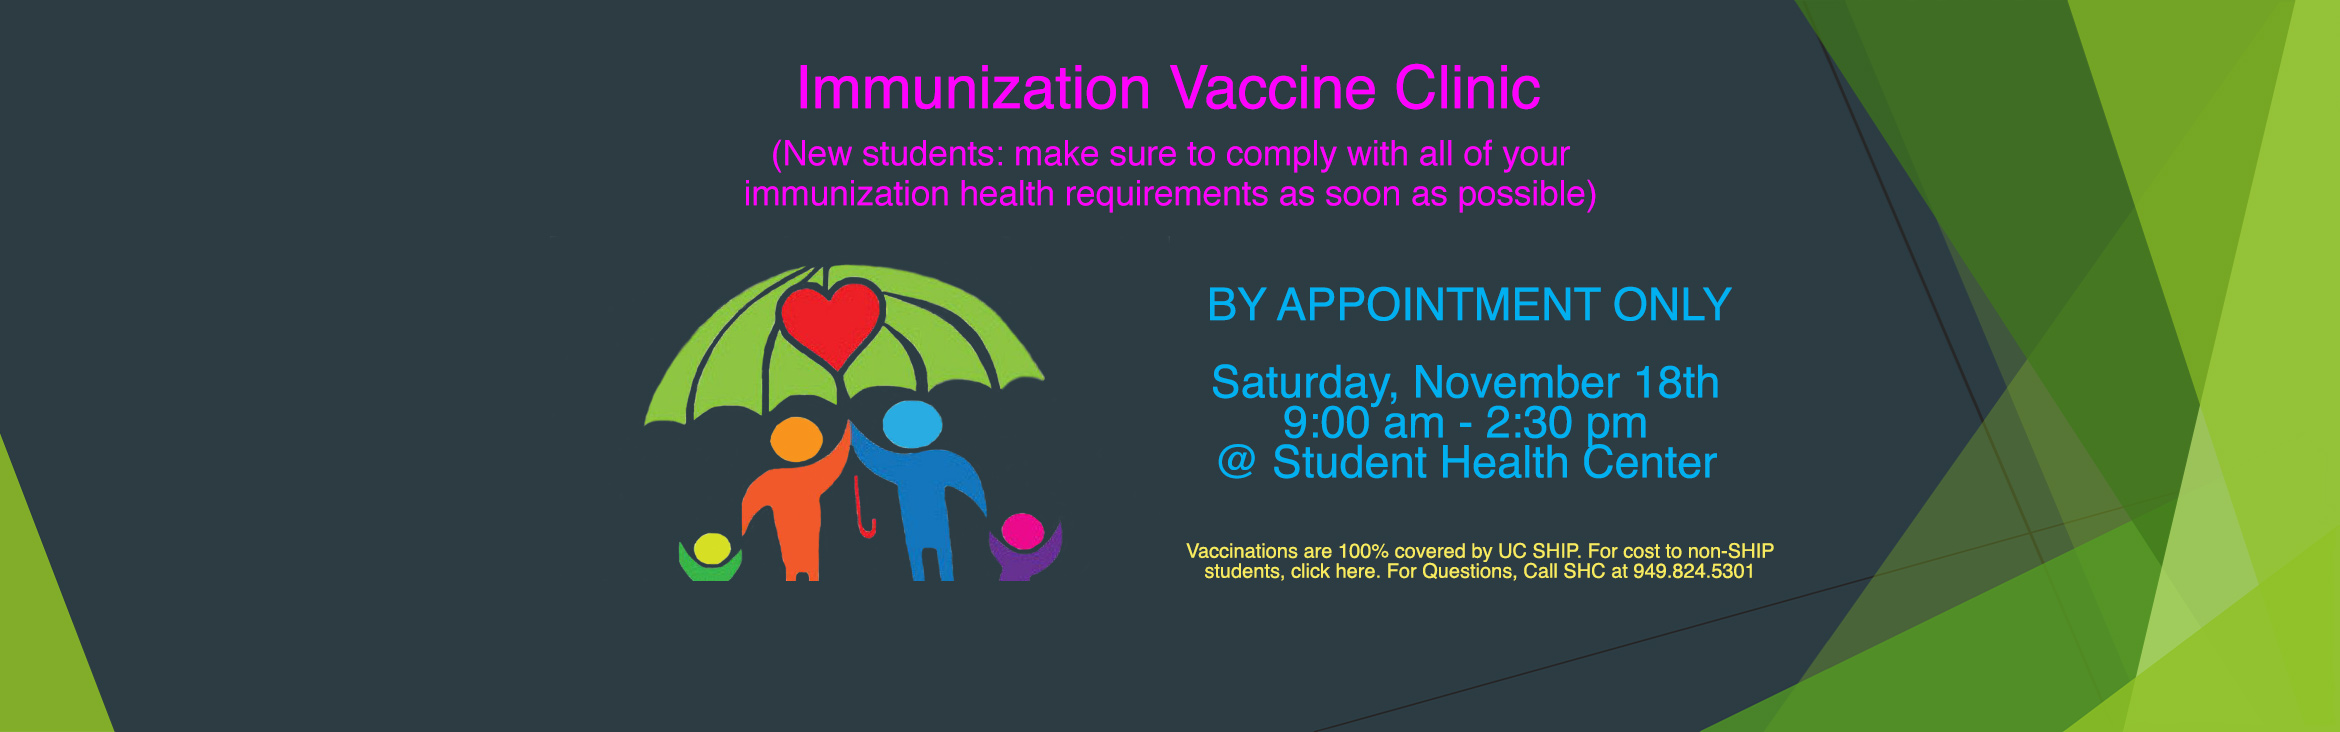 Immunization Vaccine Clinic, by appointment only. Saturday, November 18th 9:00 am to 2:30 pm @ Student Health Center